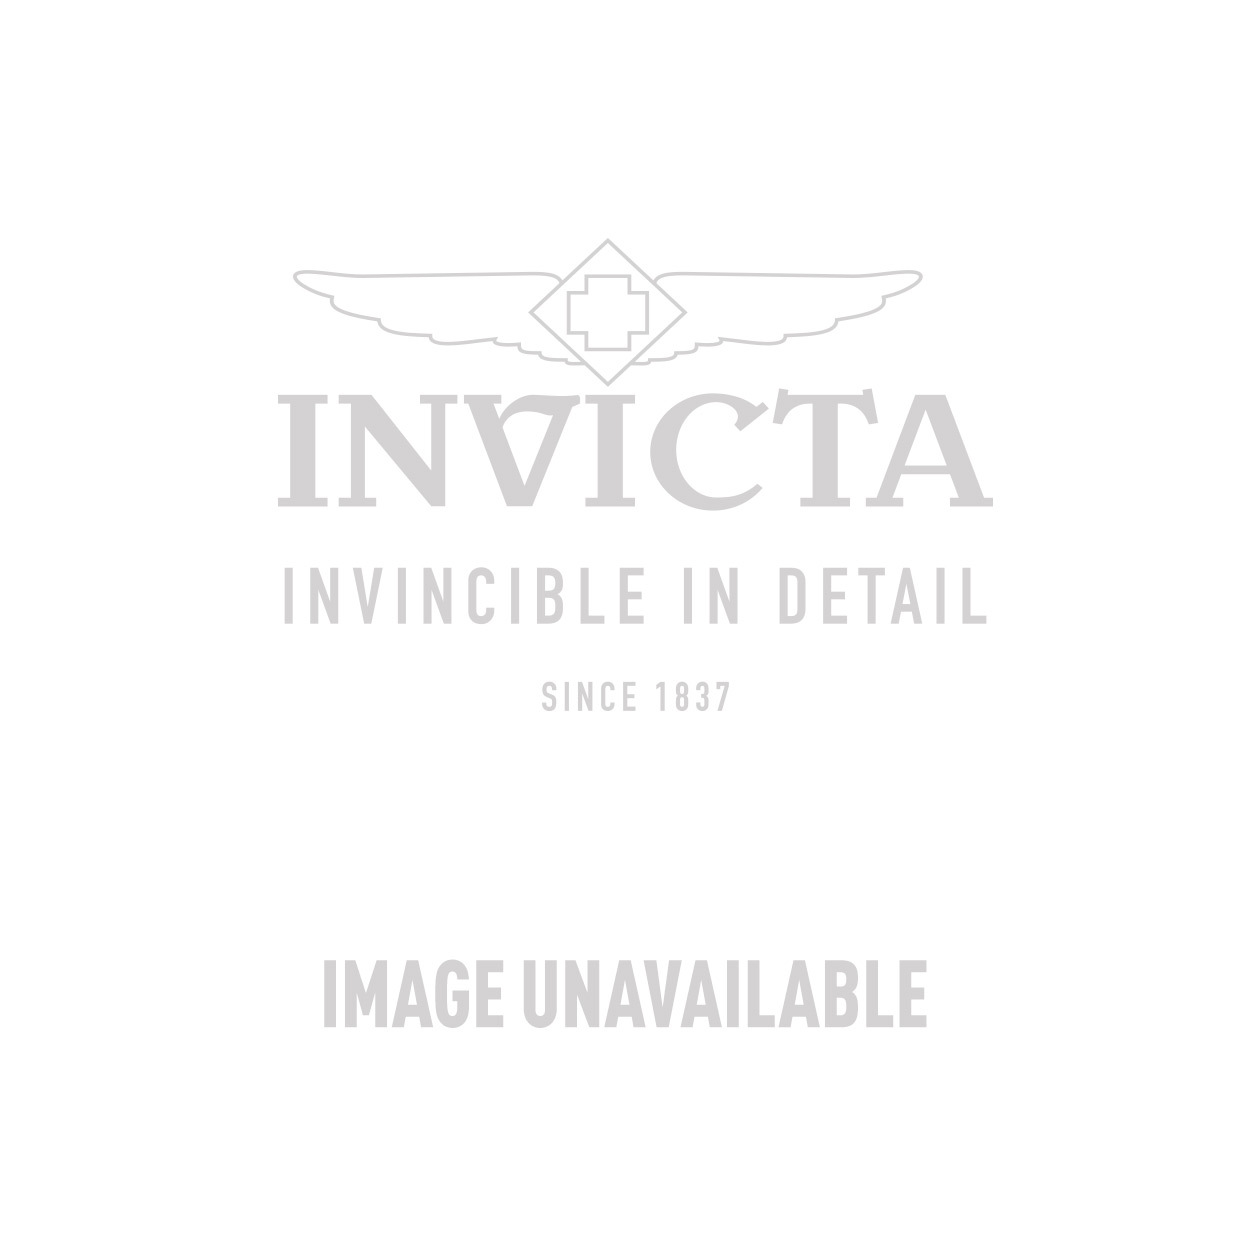 Invicta Reserve Swiss Made Quartz Watch - Stainless Steel case Stainless Steel band - Model 11858